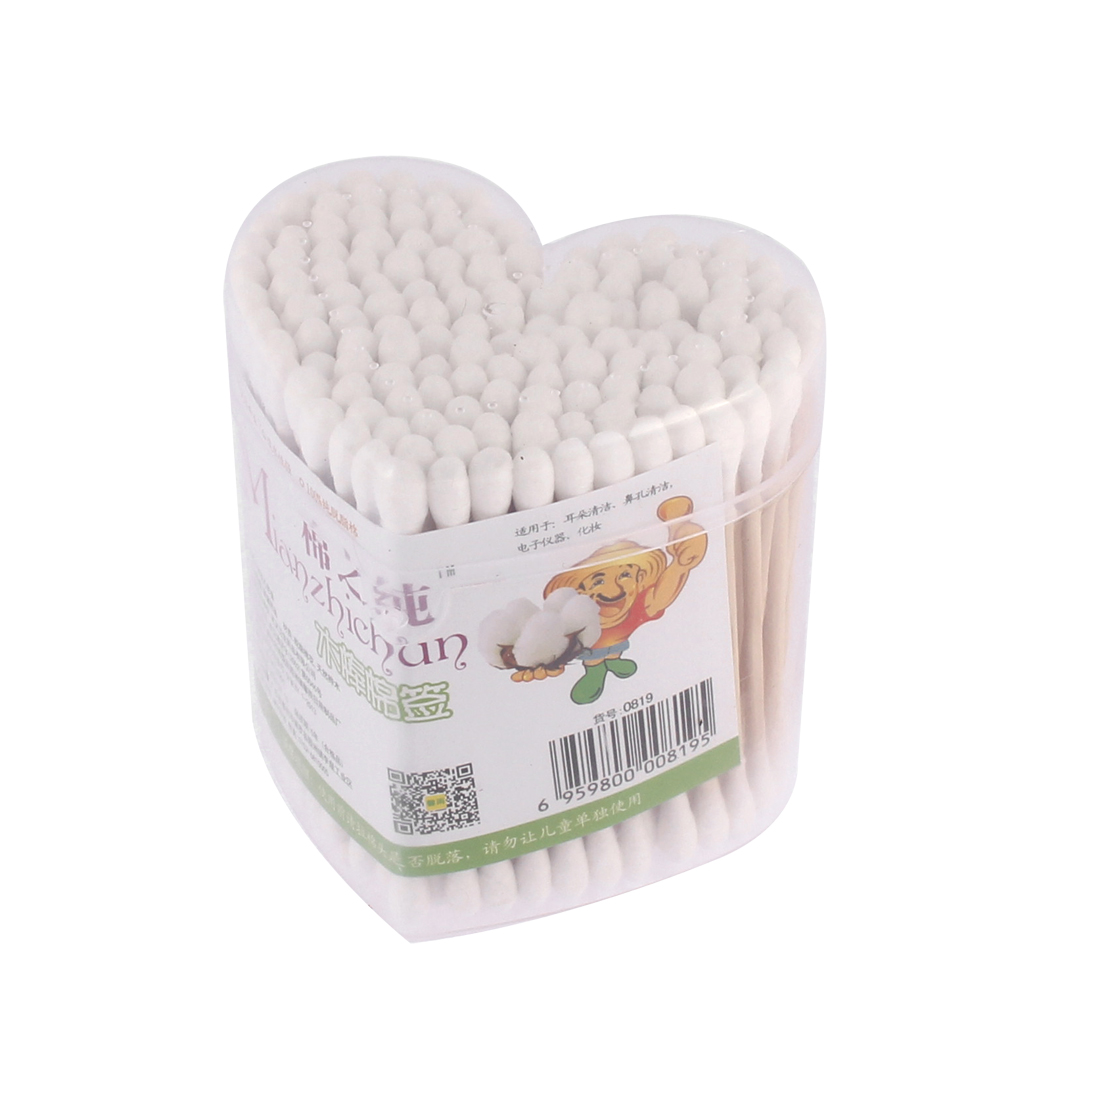 160Pcs Double End Ear Wax Remover Picks Cotton Swabs Bud Cosmetic Tool